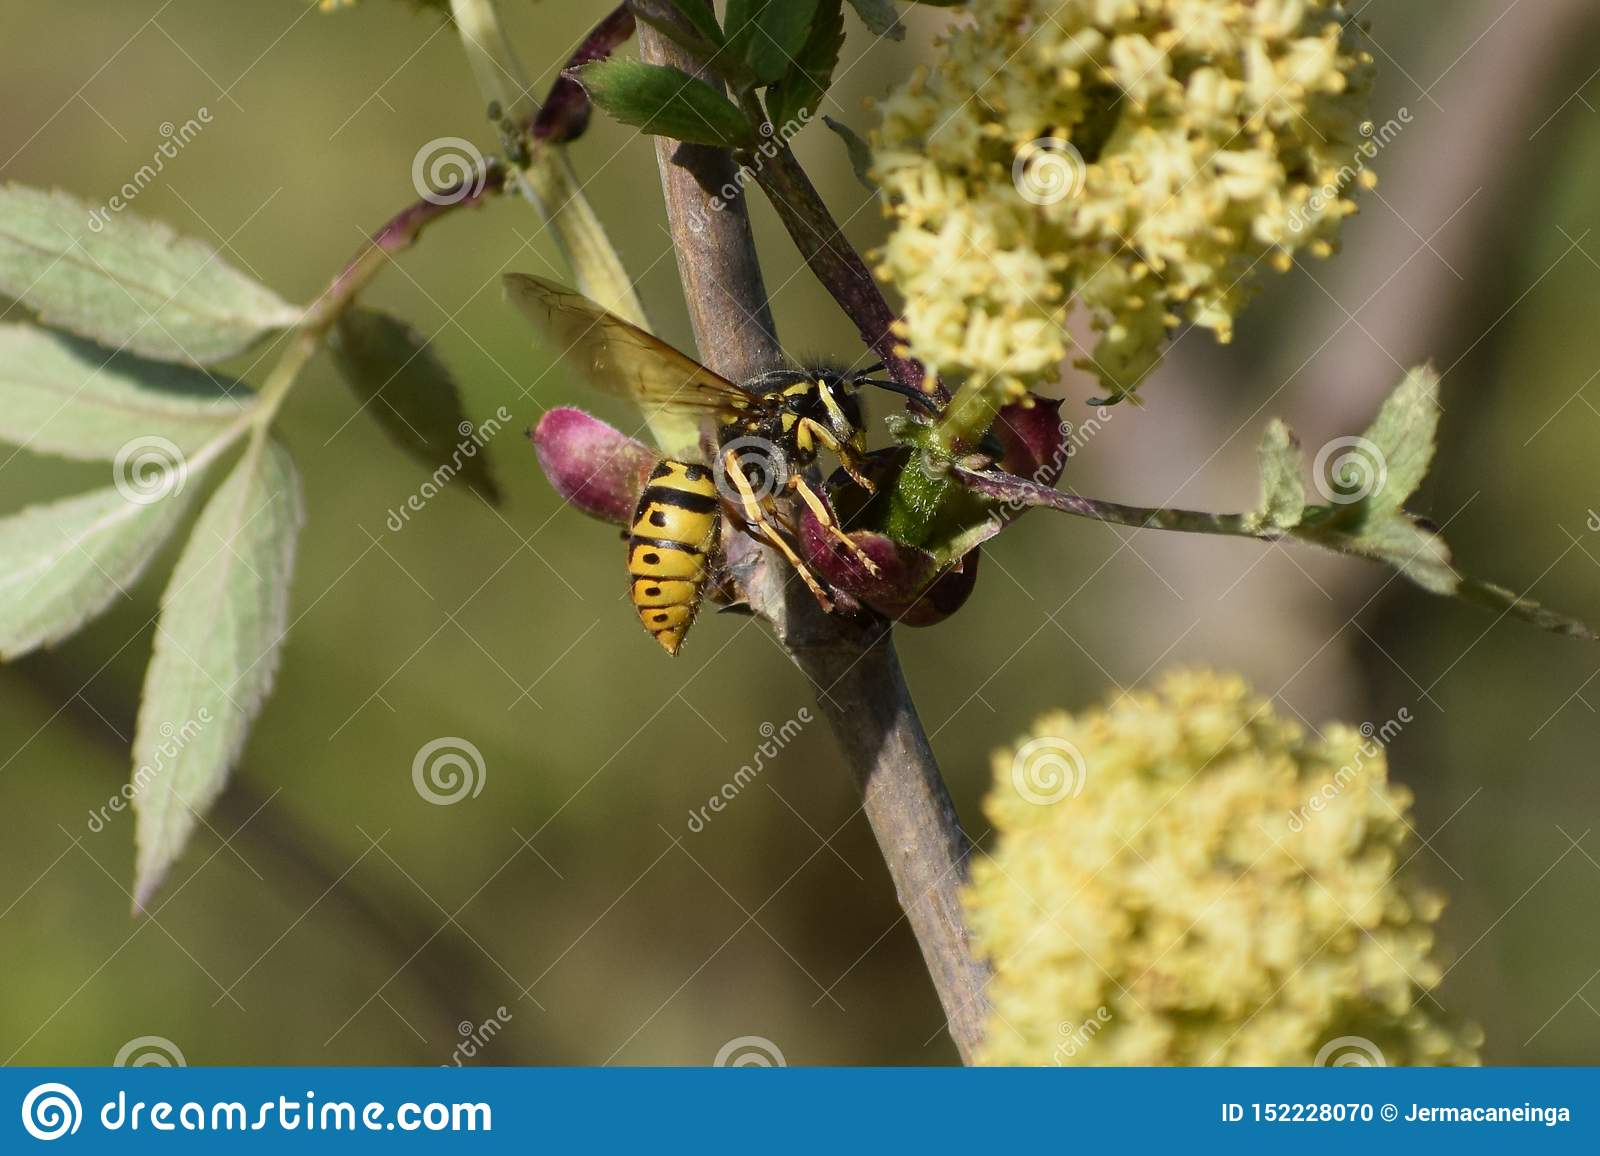 Wasp in a blooming elderberry